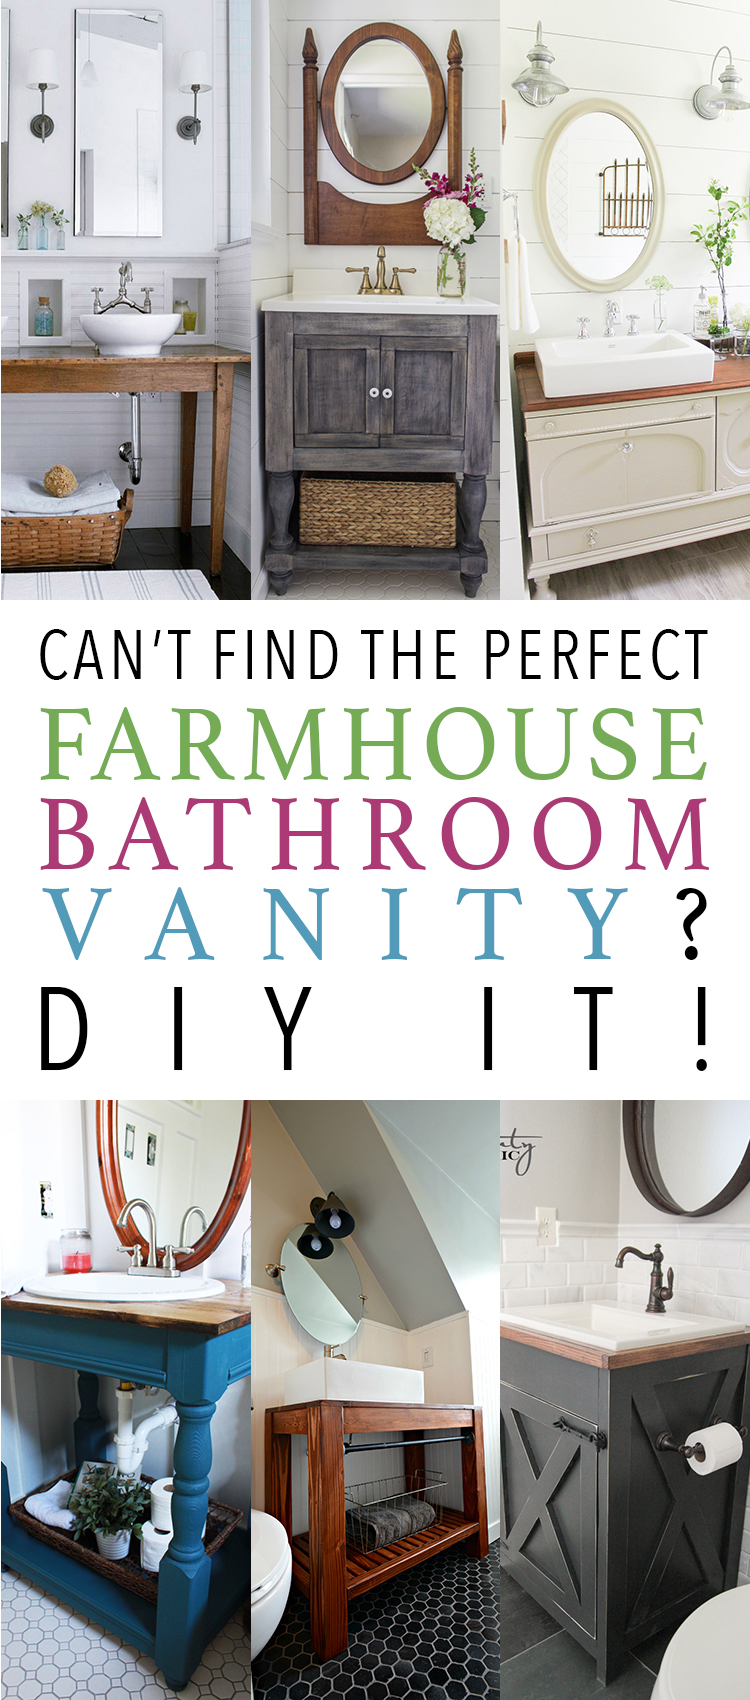 Use these tips to DIY your perfect farmhouse bathroom vanity.